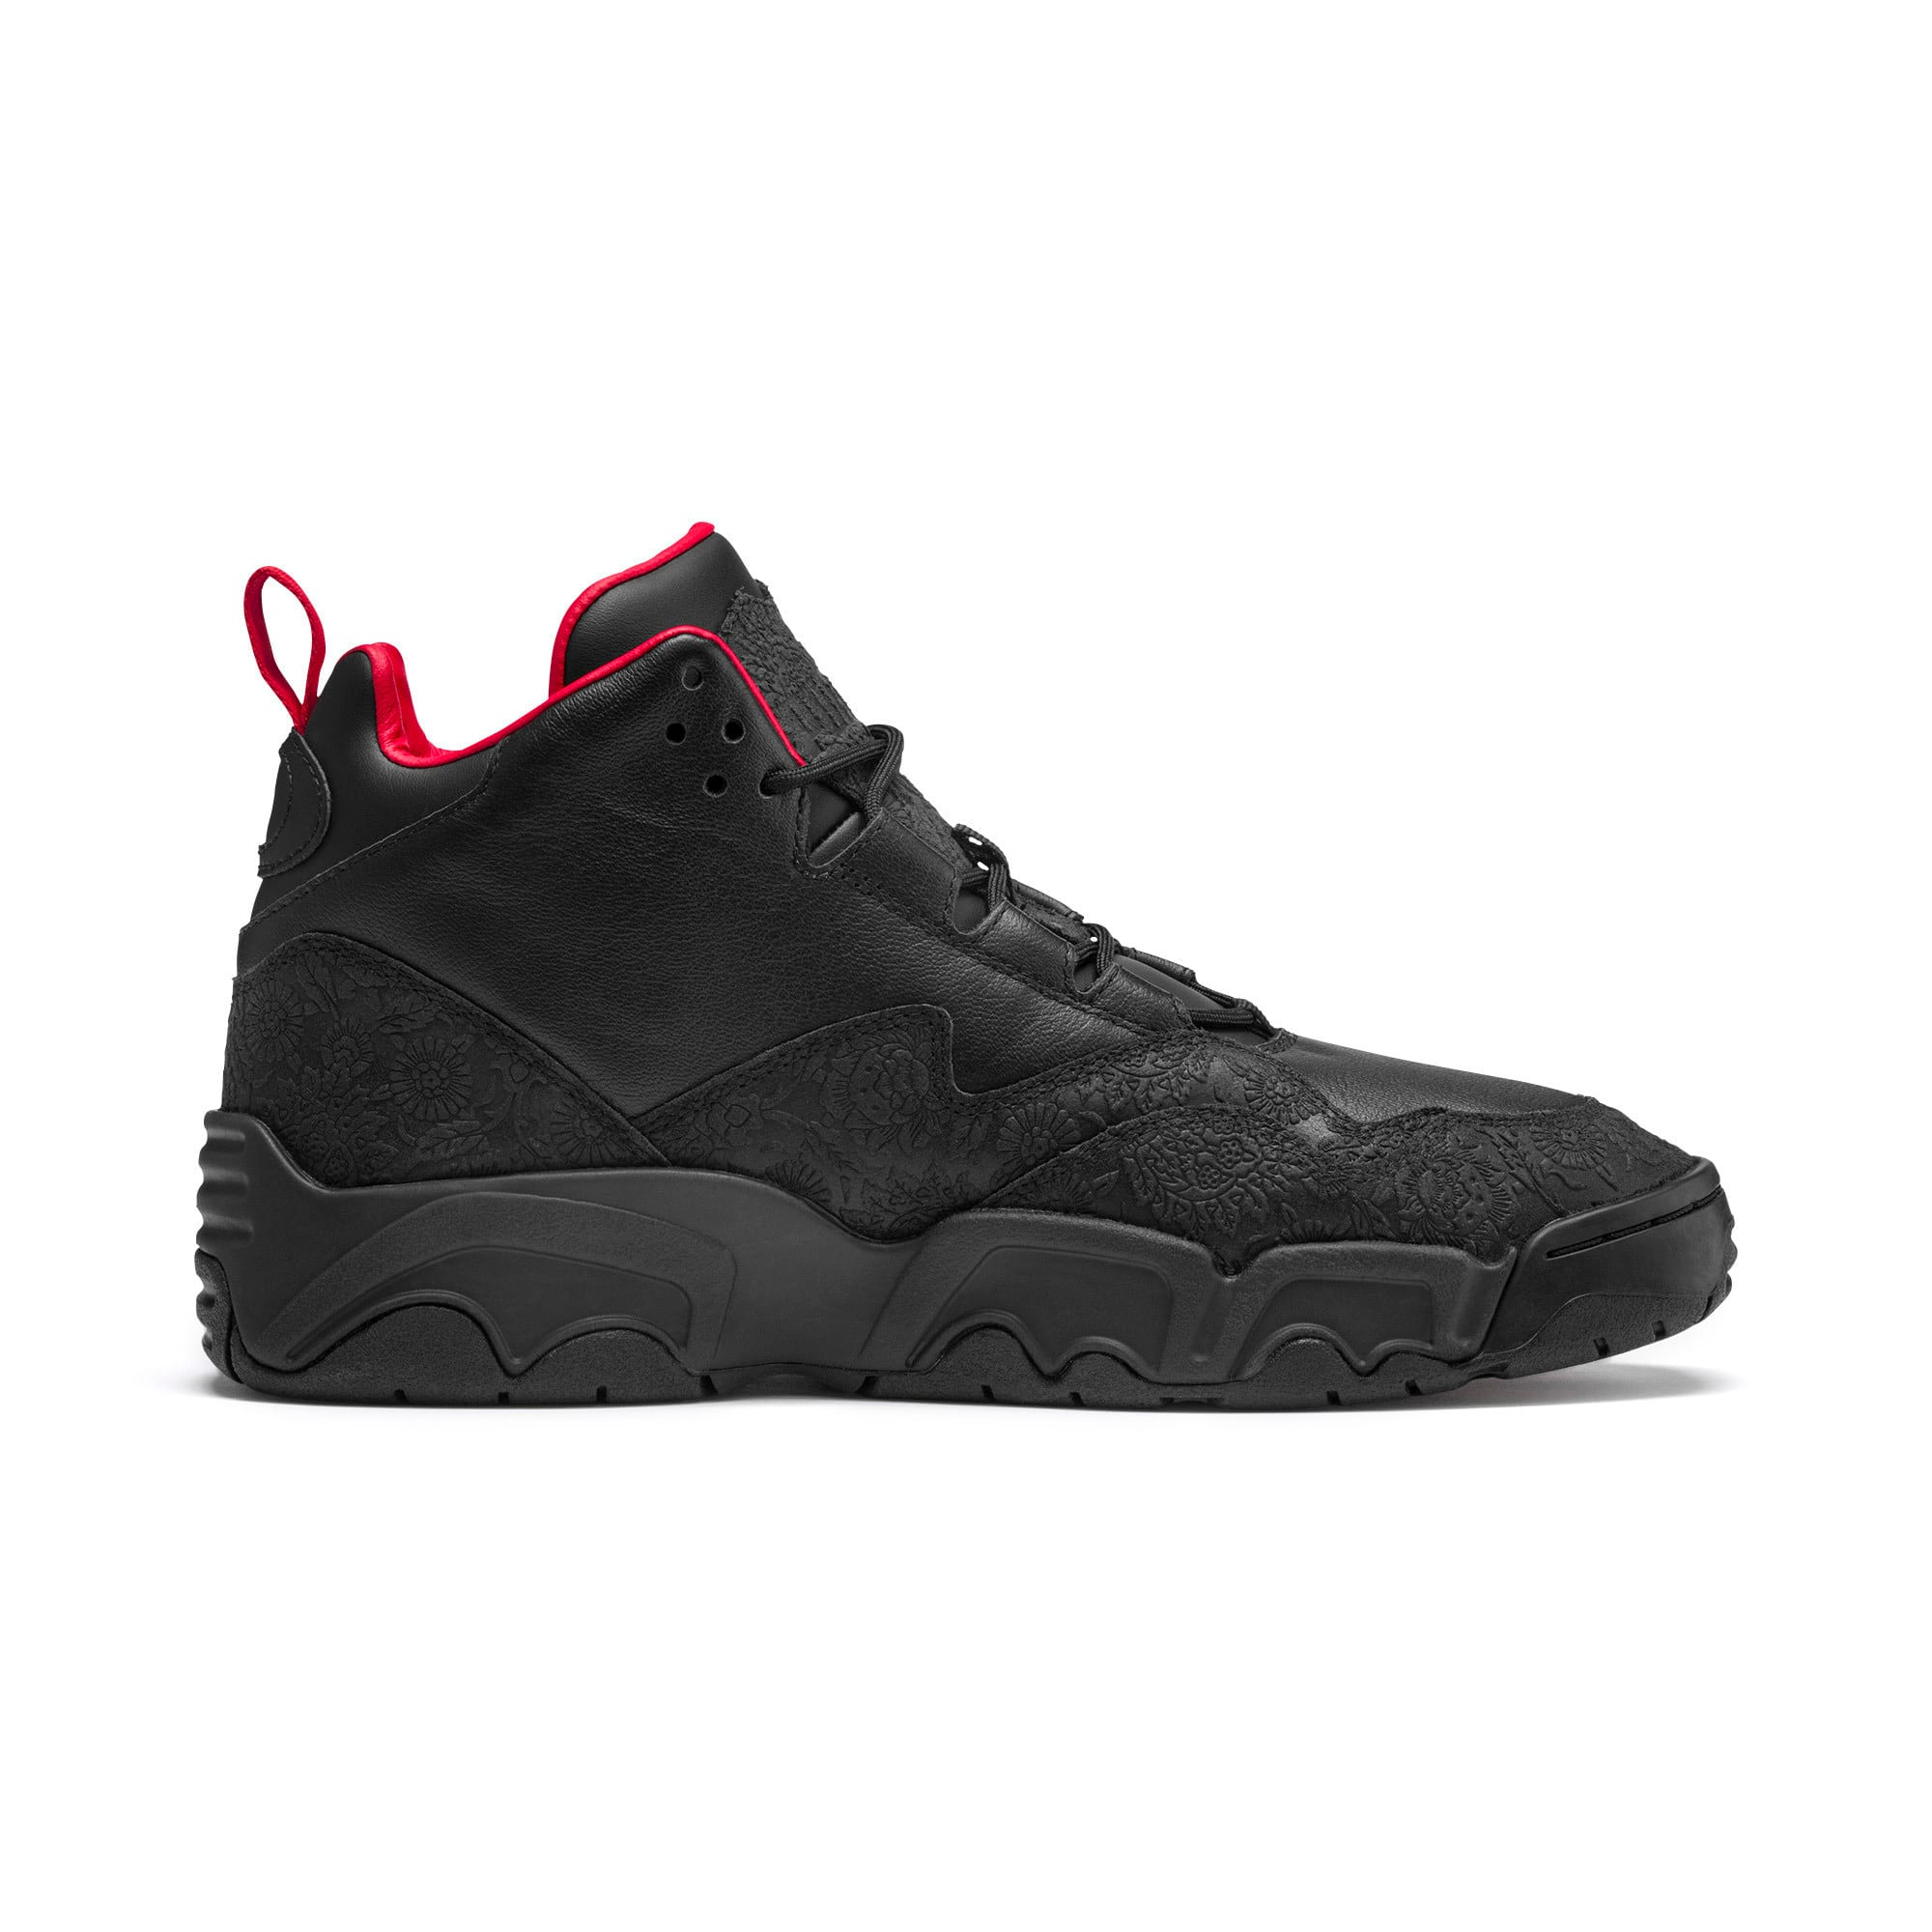 Thumbnail 6 of Source Mid World Cup Sneakers, P Blk-Bronze-High Risk Red, medium